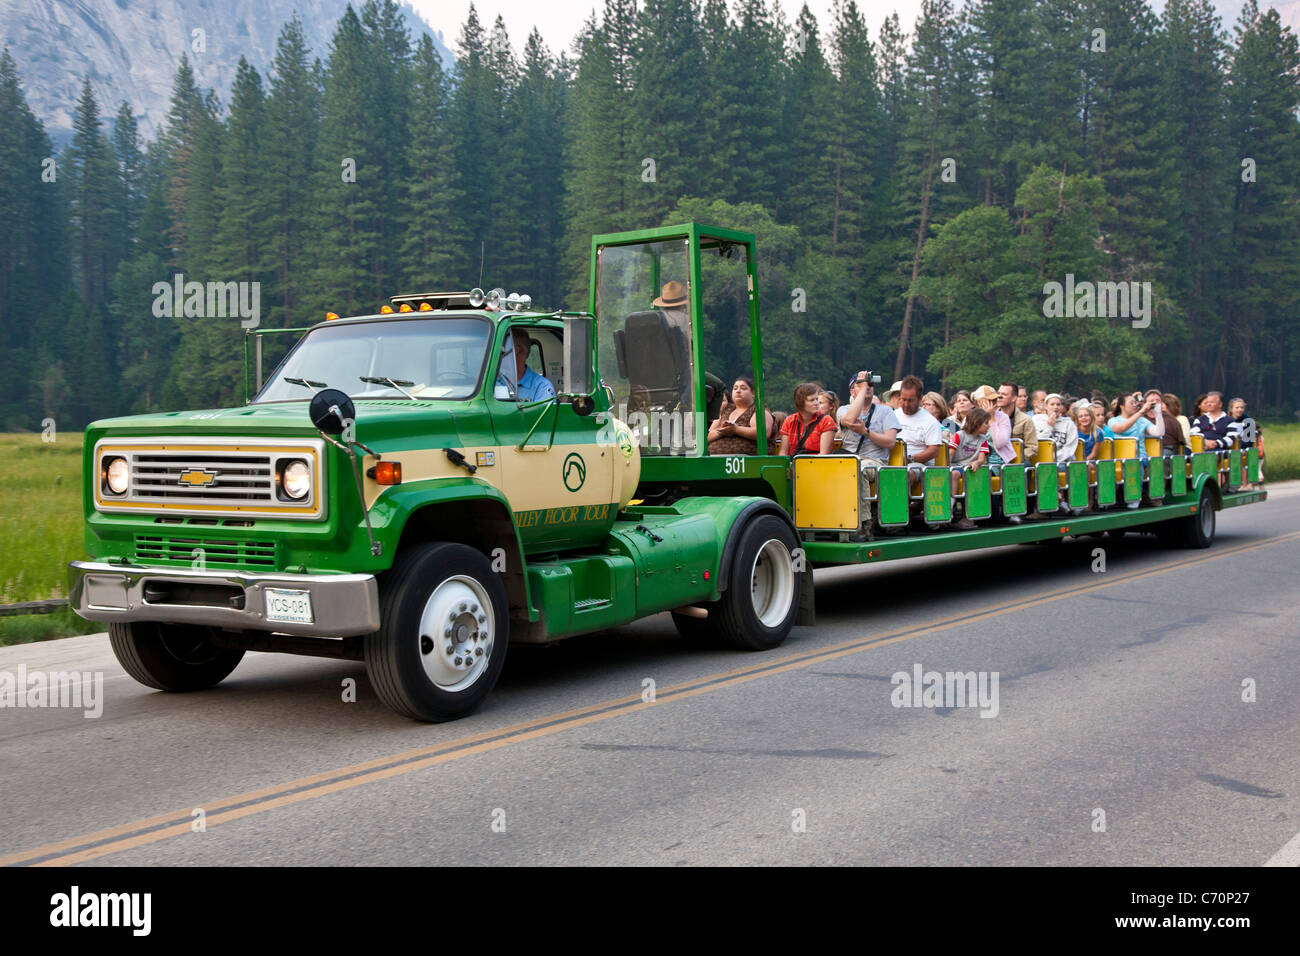 Superior Stock Photo   Yosemite Valley Floor Tour Bus Loaded With Tourists, Yosemite  National Park USA. JMH5253